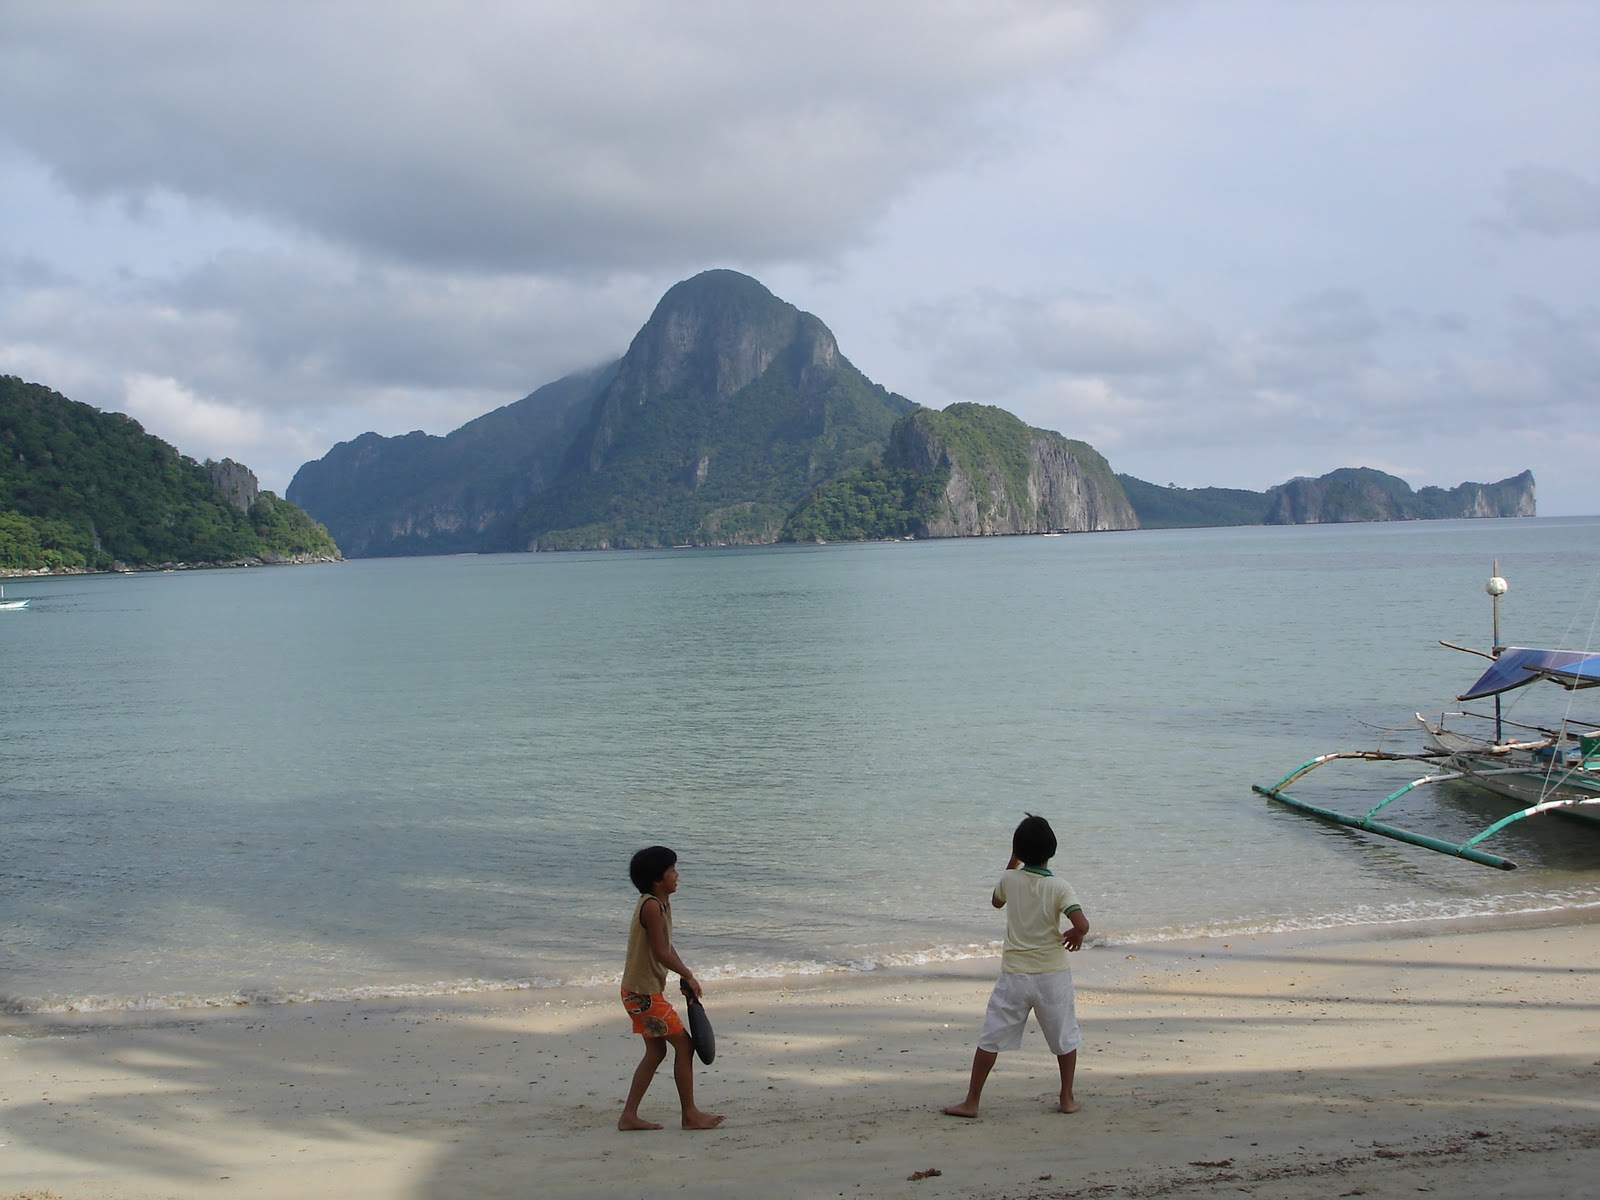 El nido on a budget